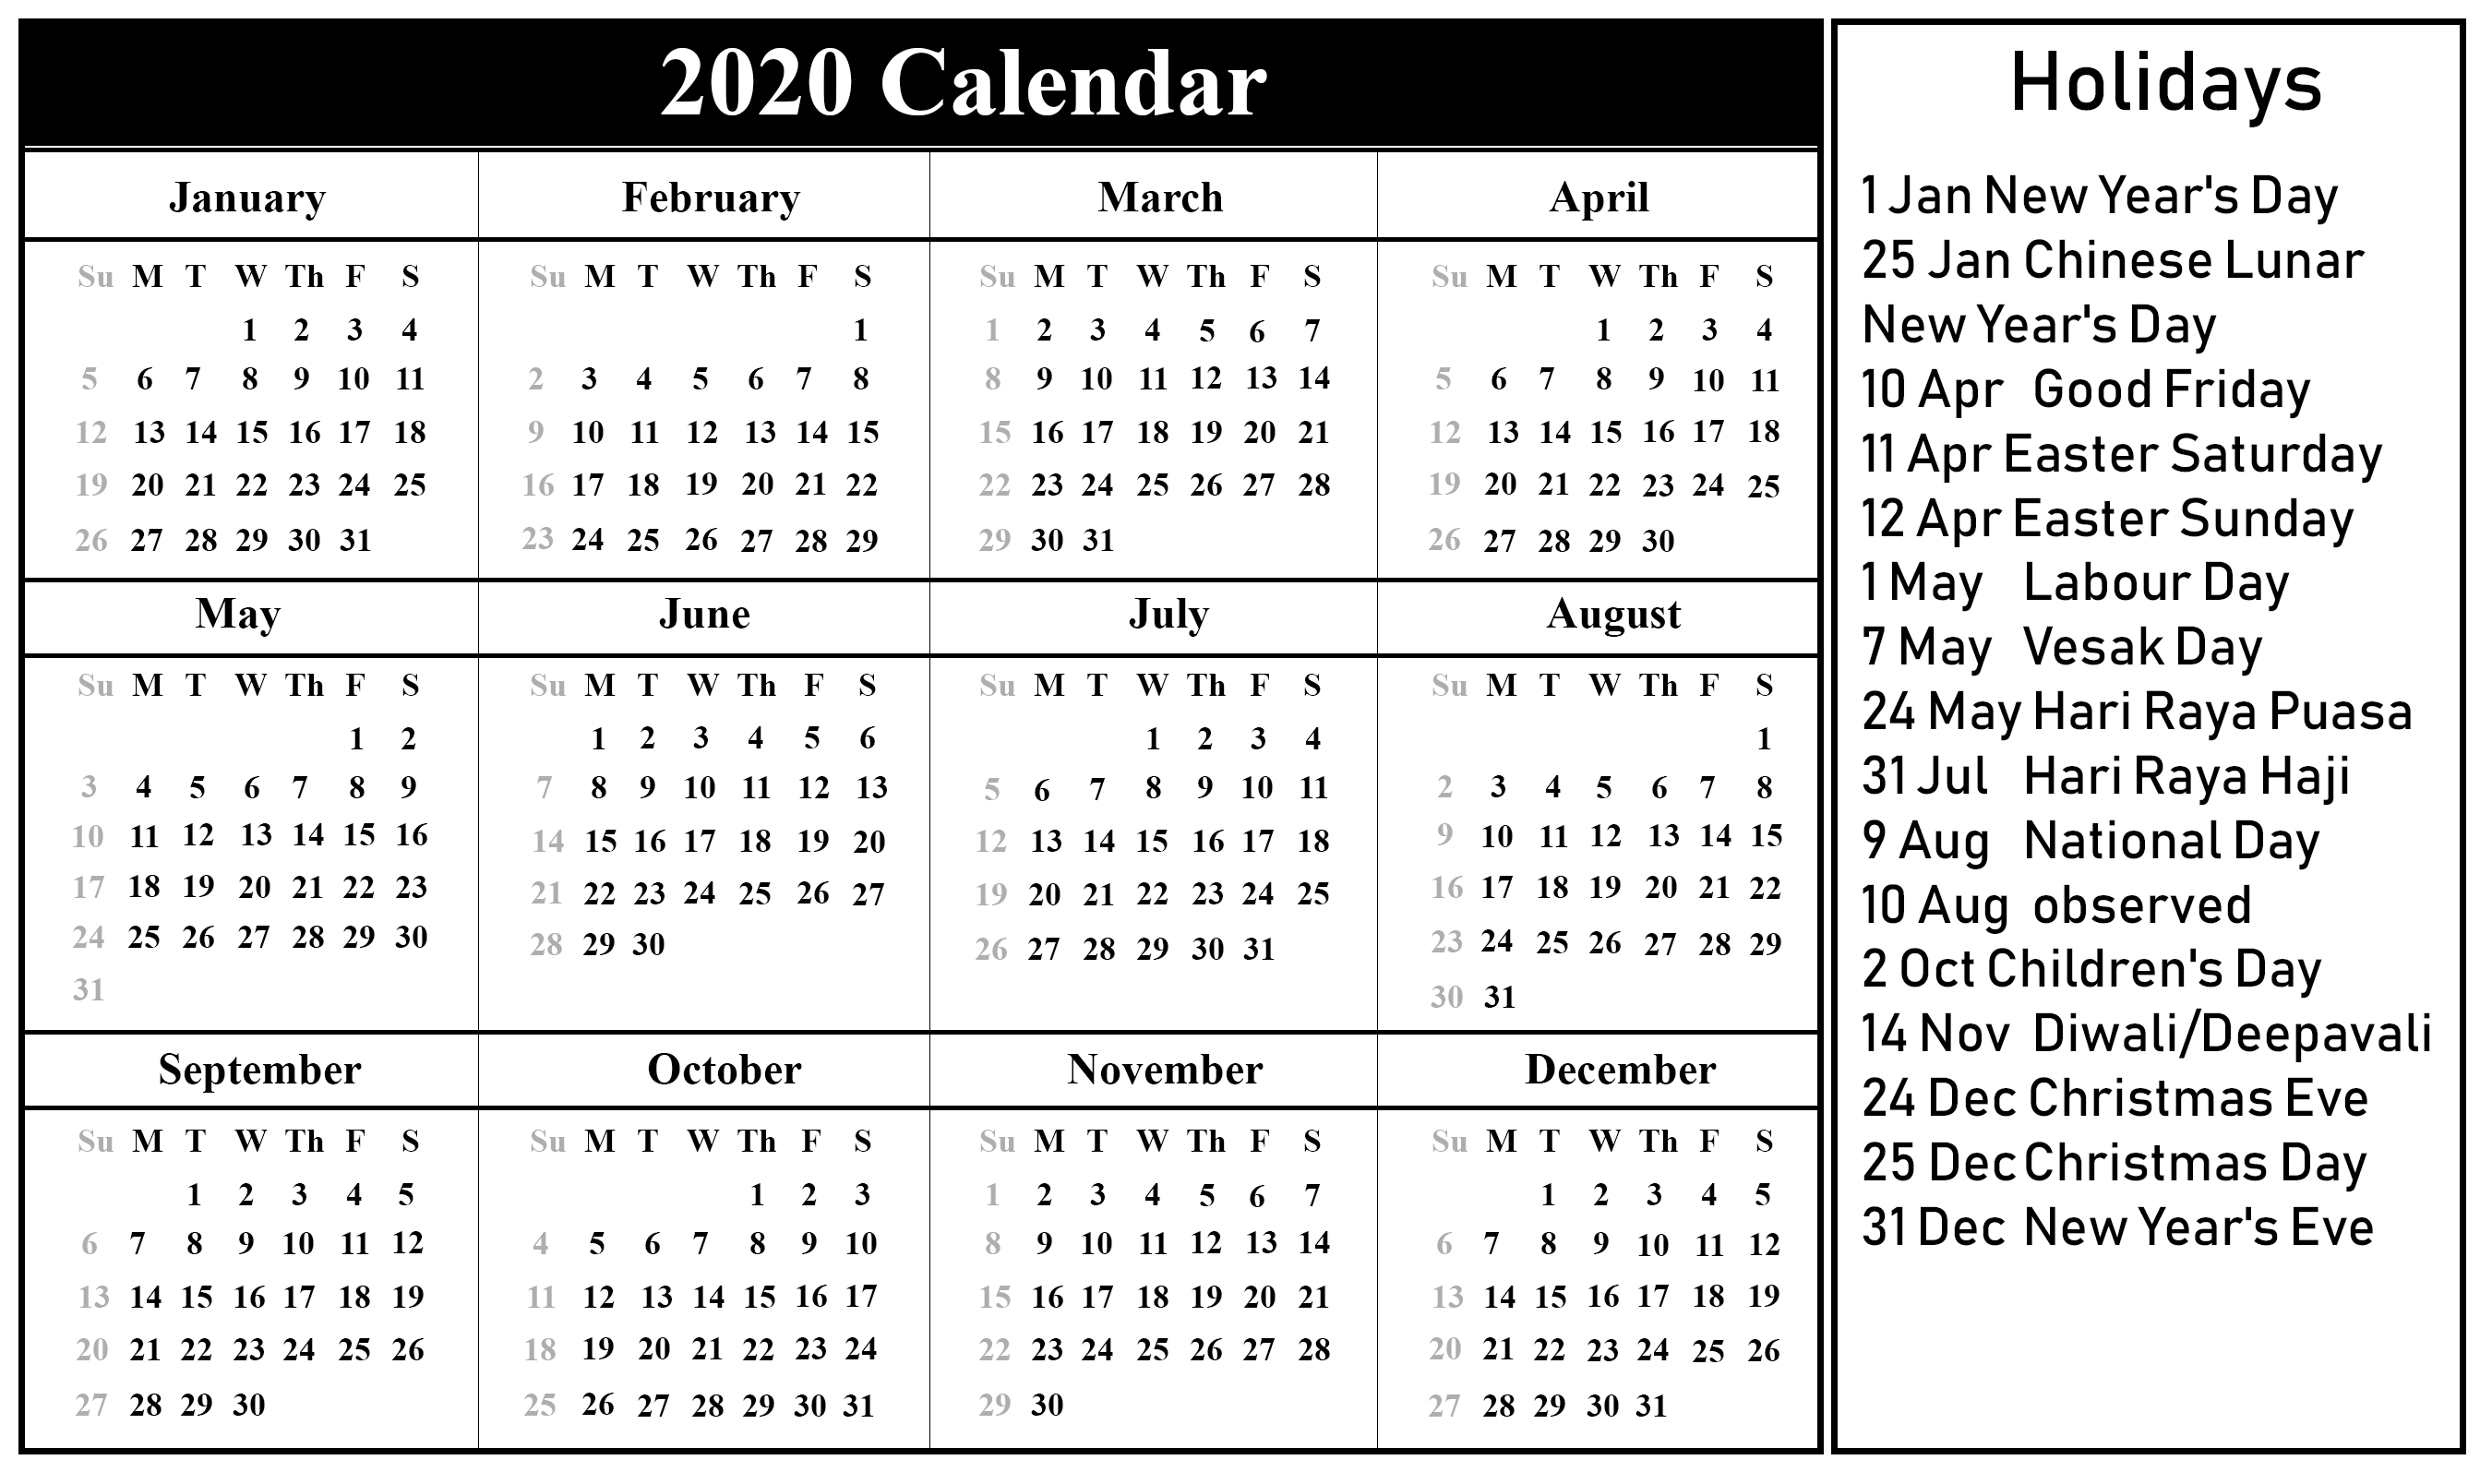 Printable 2020 Calendar With Holidays | Monthly Calendar Perky Printable Calendar 2020 Of Ridiculous Holidays